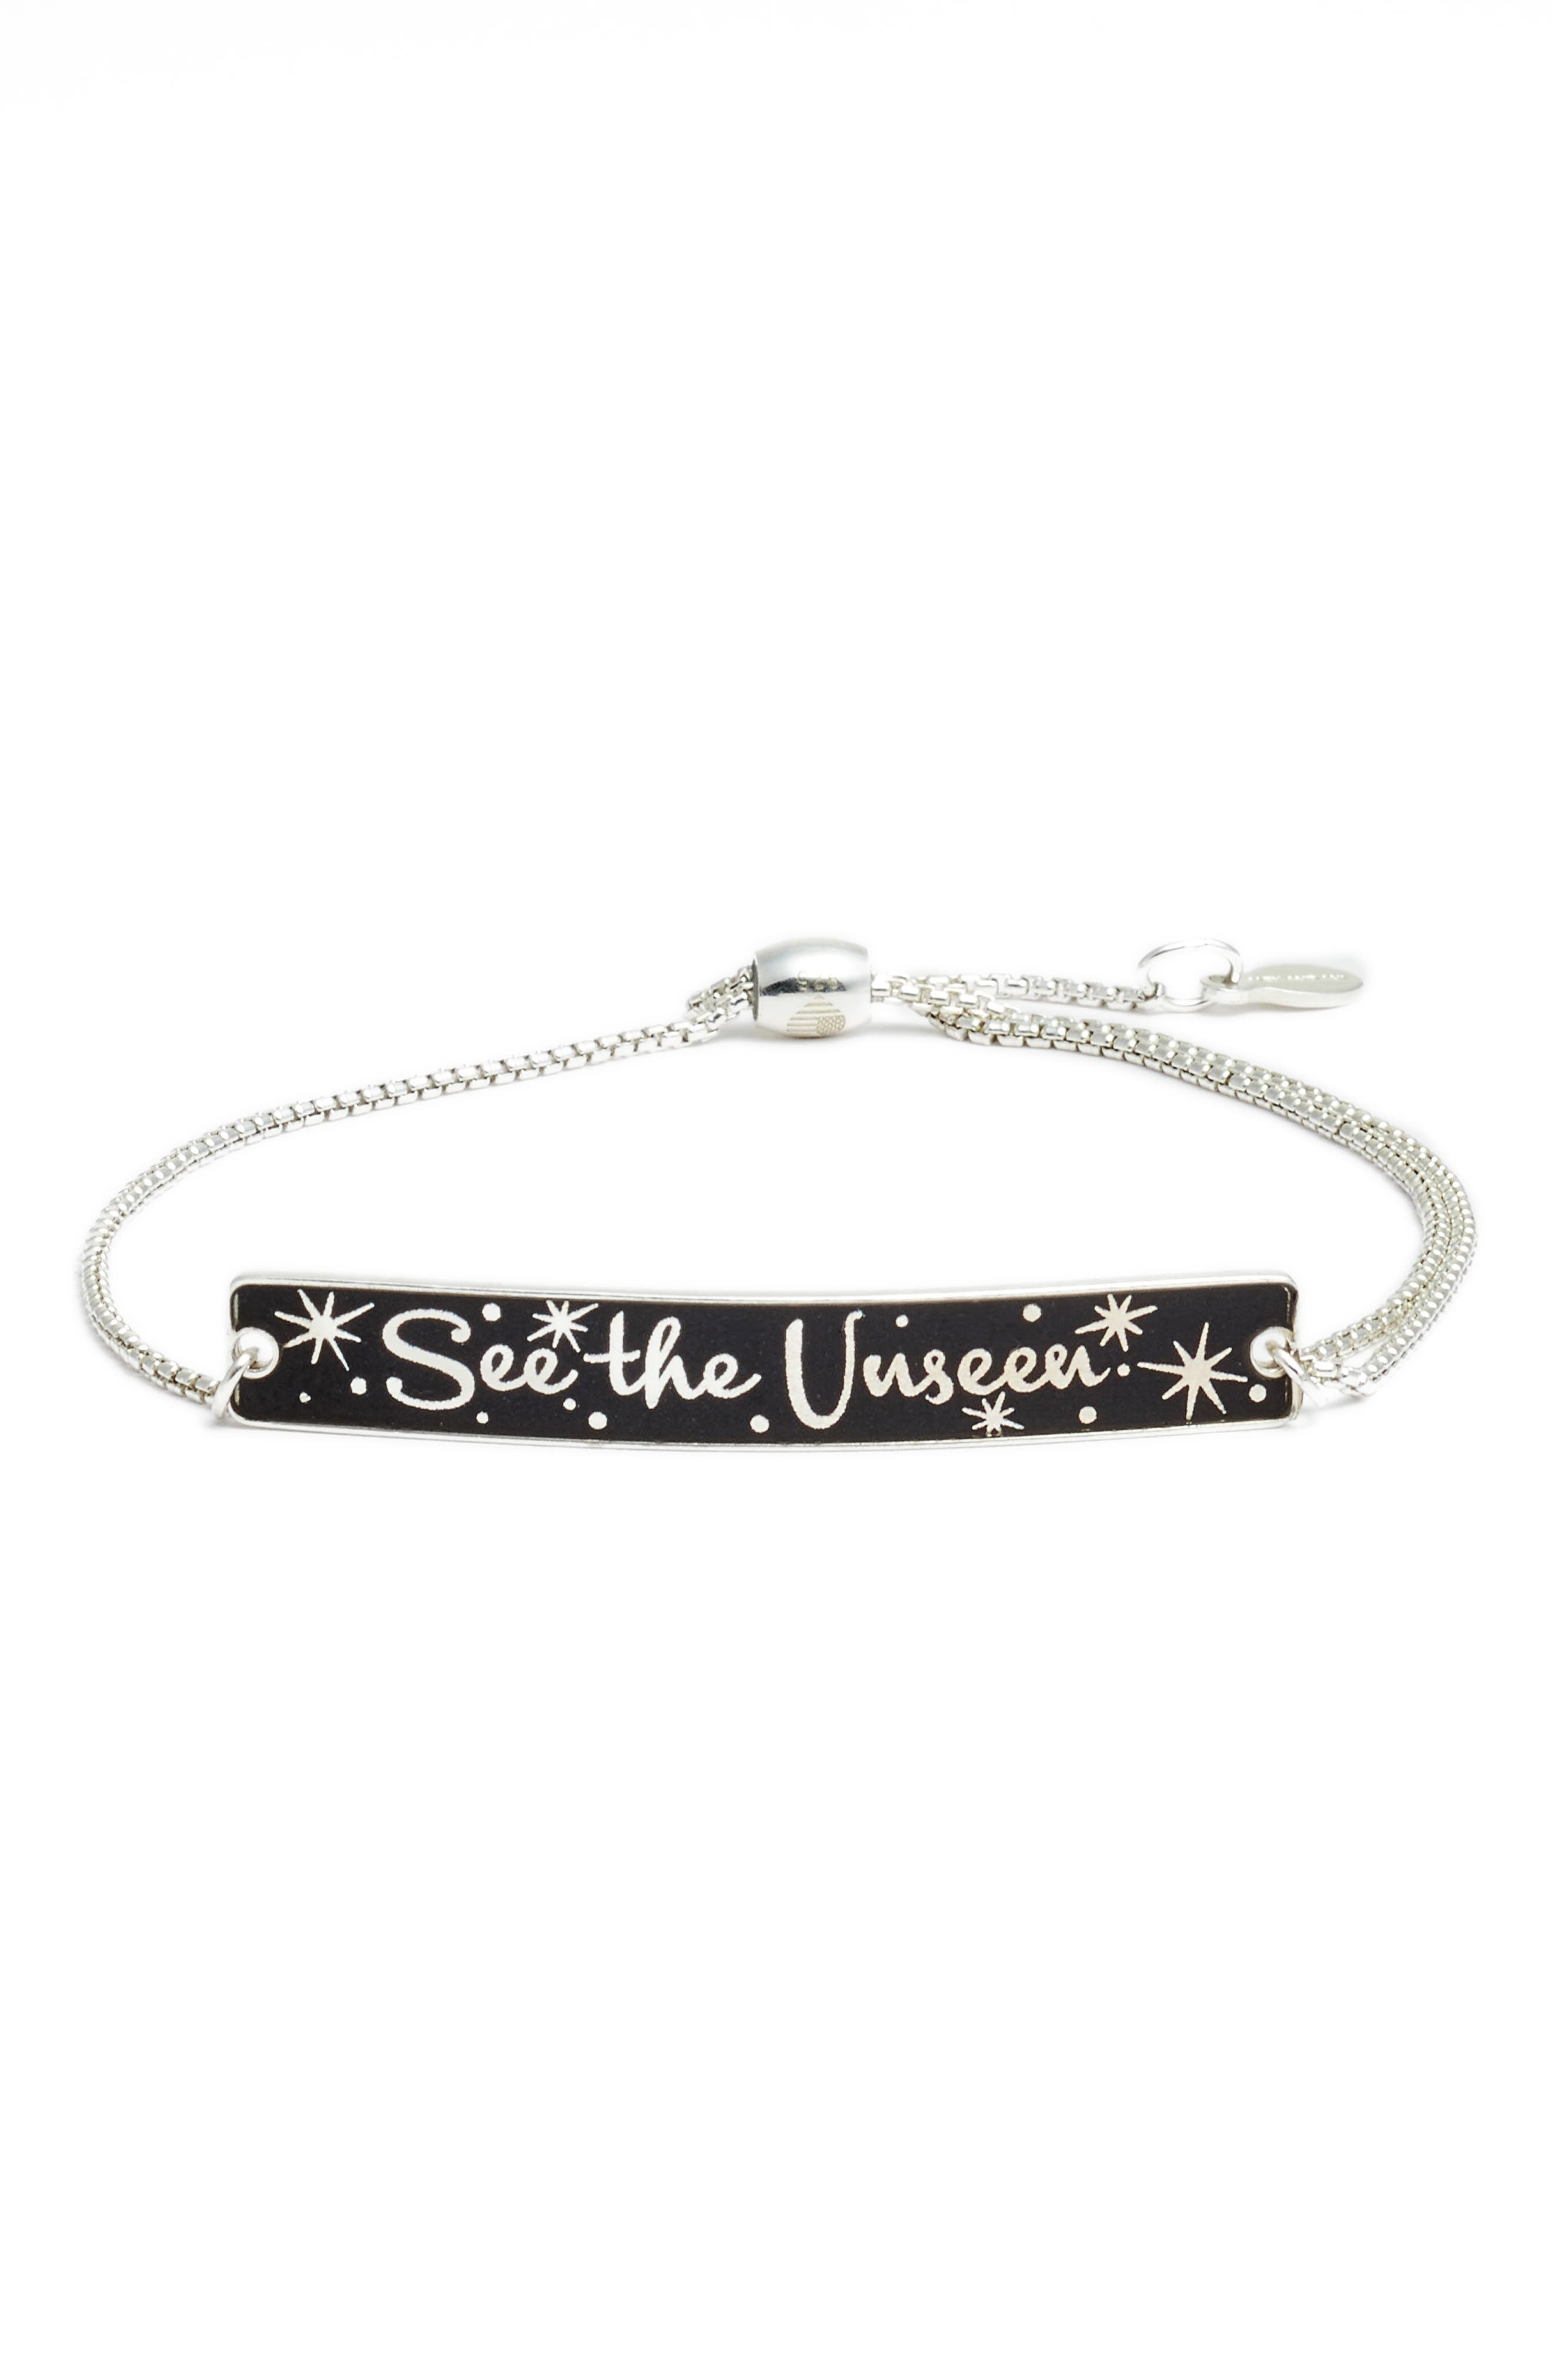 x Disney<sup>®</sup> 'A Wrinkle in Time' See the Unseen Pull-Chain Bracelet,                         Main,                         color, 040